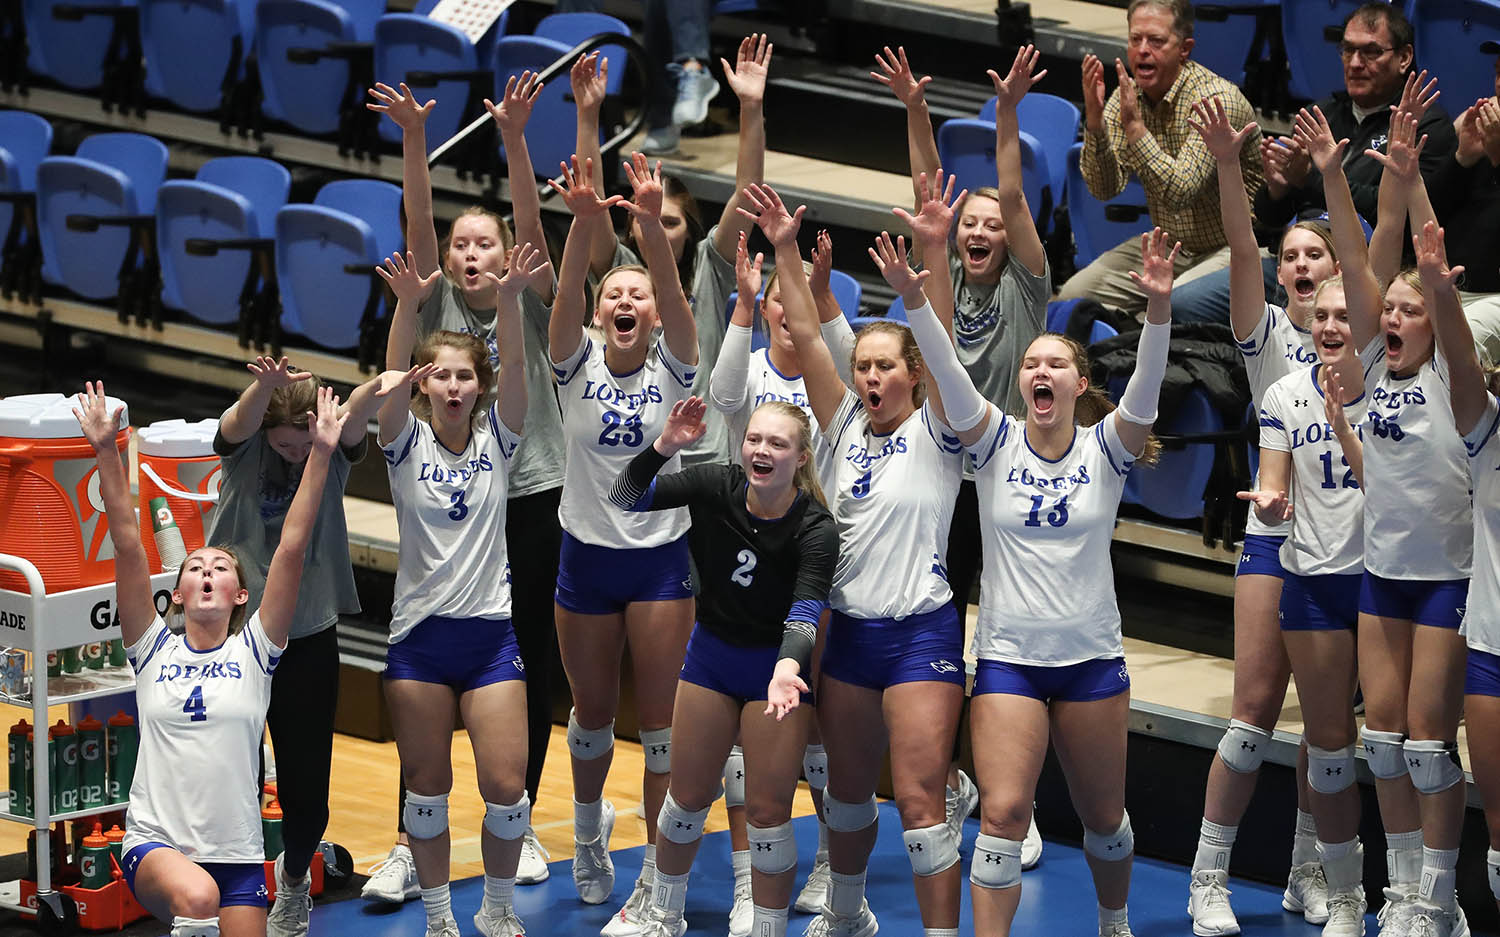 UNK's sideline celebrations provide energy and entertainment during Loper volleyball matches. (Photo by Corbey R. Dorsey, UNK Communications)